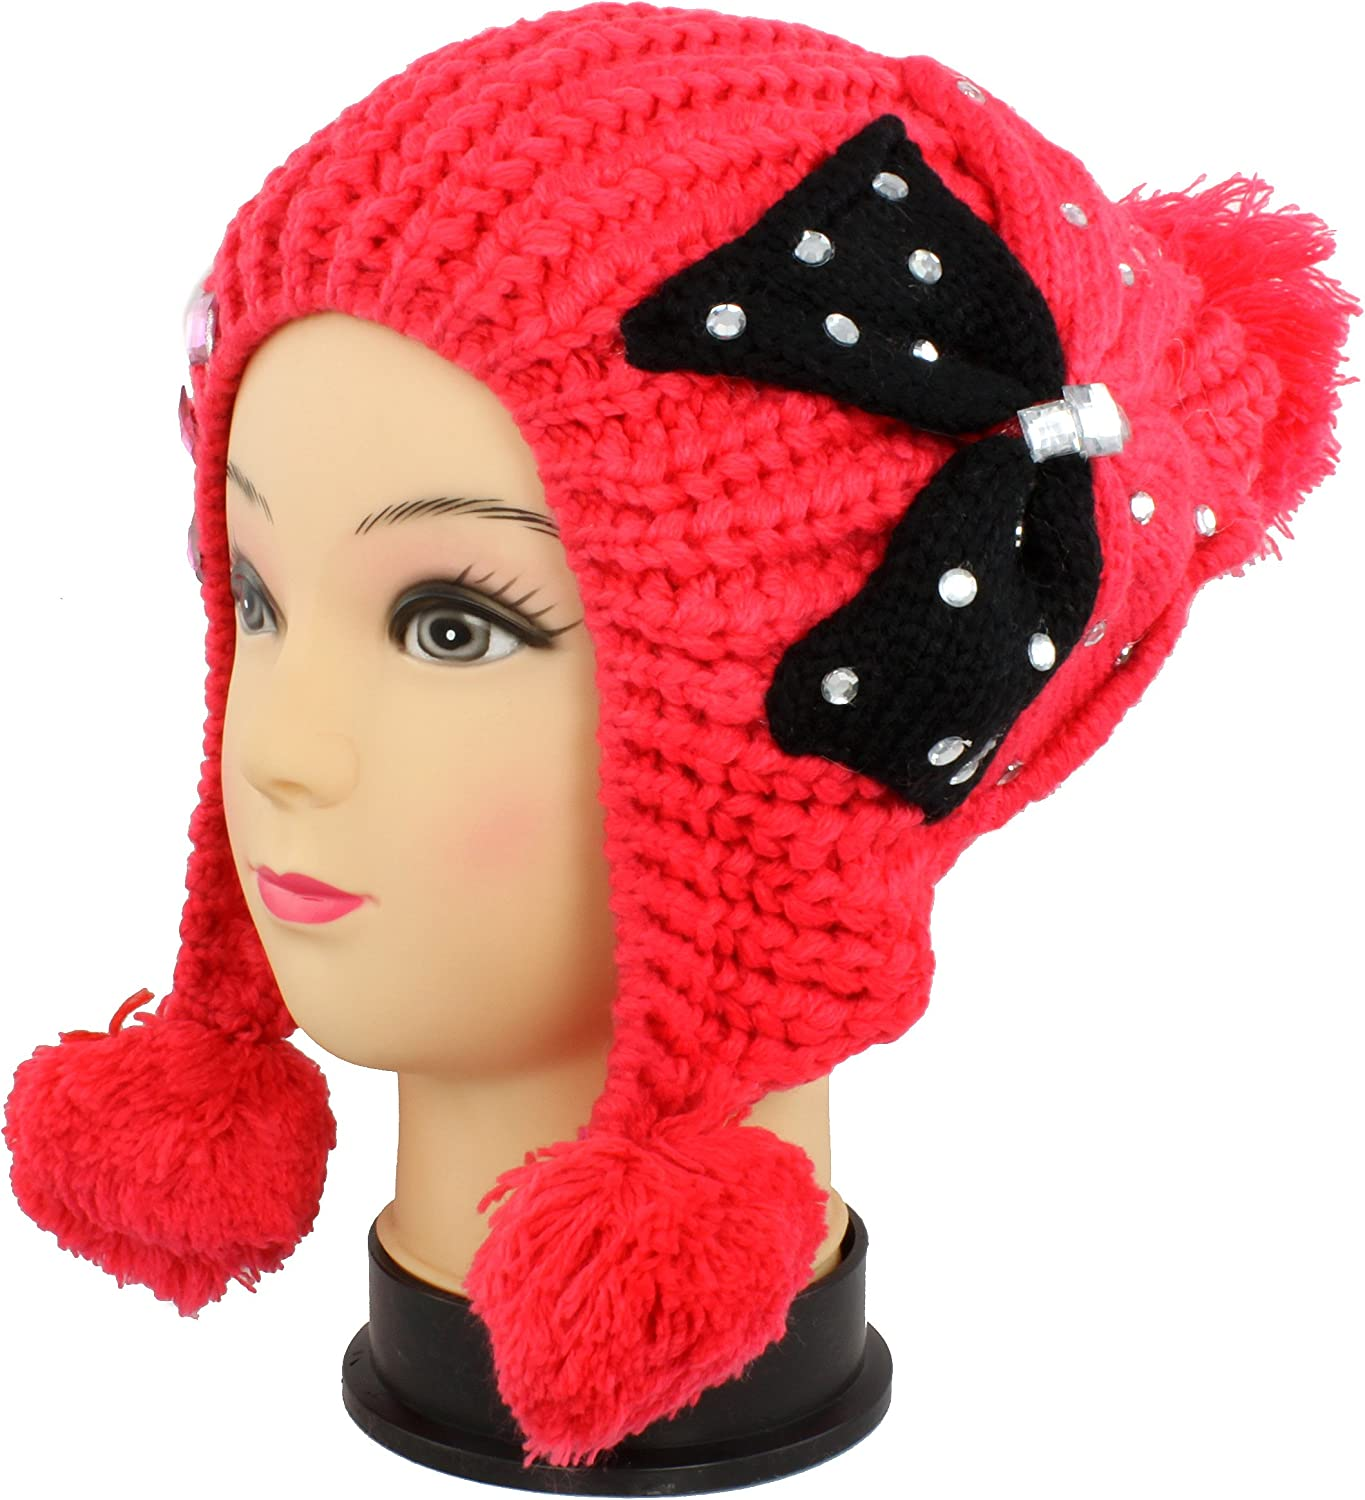 Faddism BEANRD1 Red Women Stylish Beanie with Sparklings in Red Design, Warm and Cozy, Perfect Gift Idea Embellished with Beautiful Rhinestone